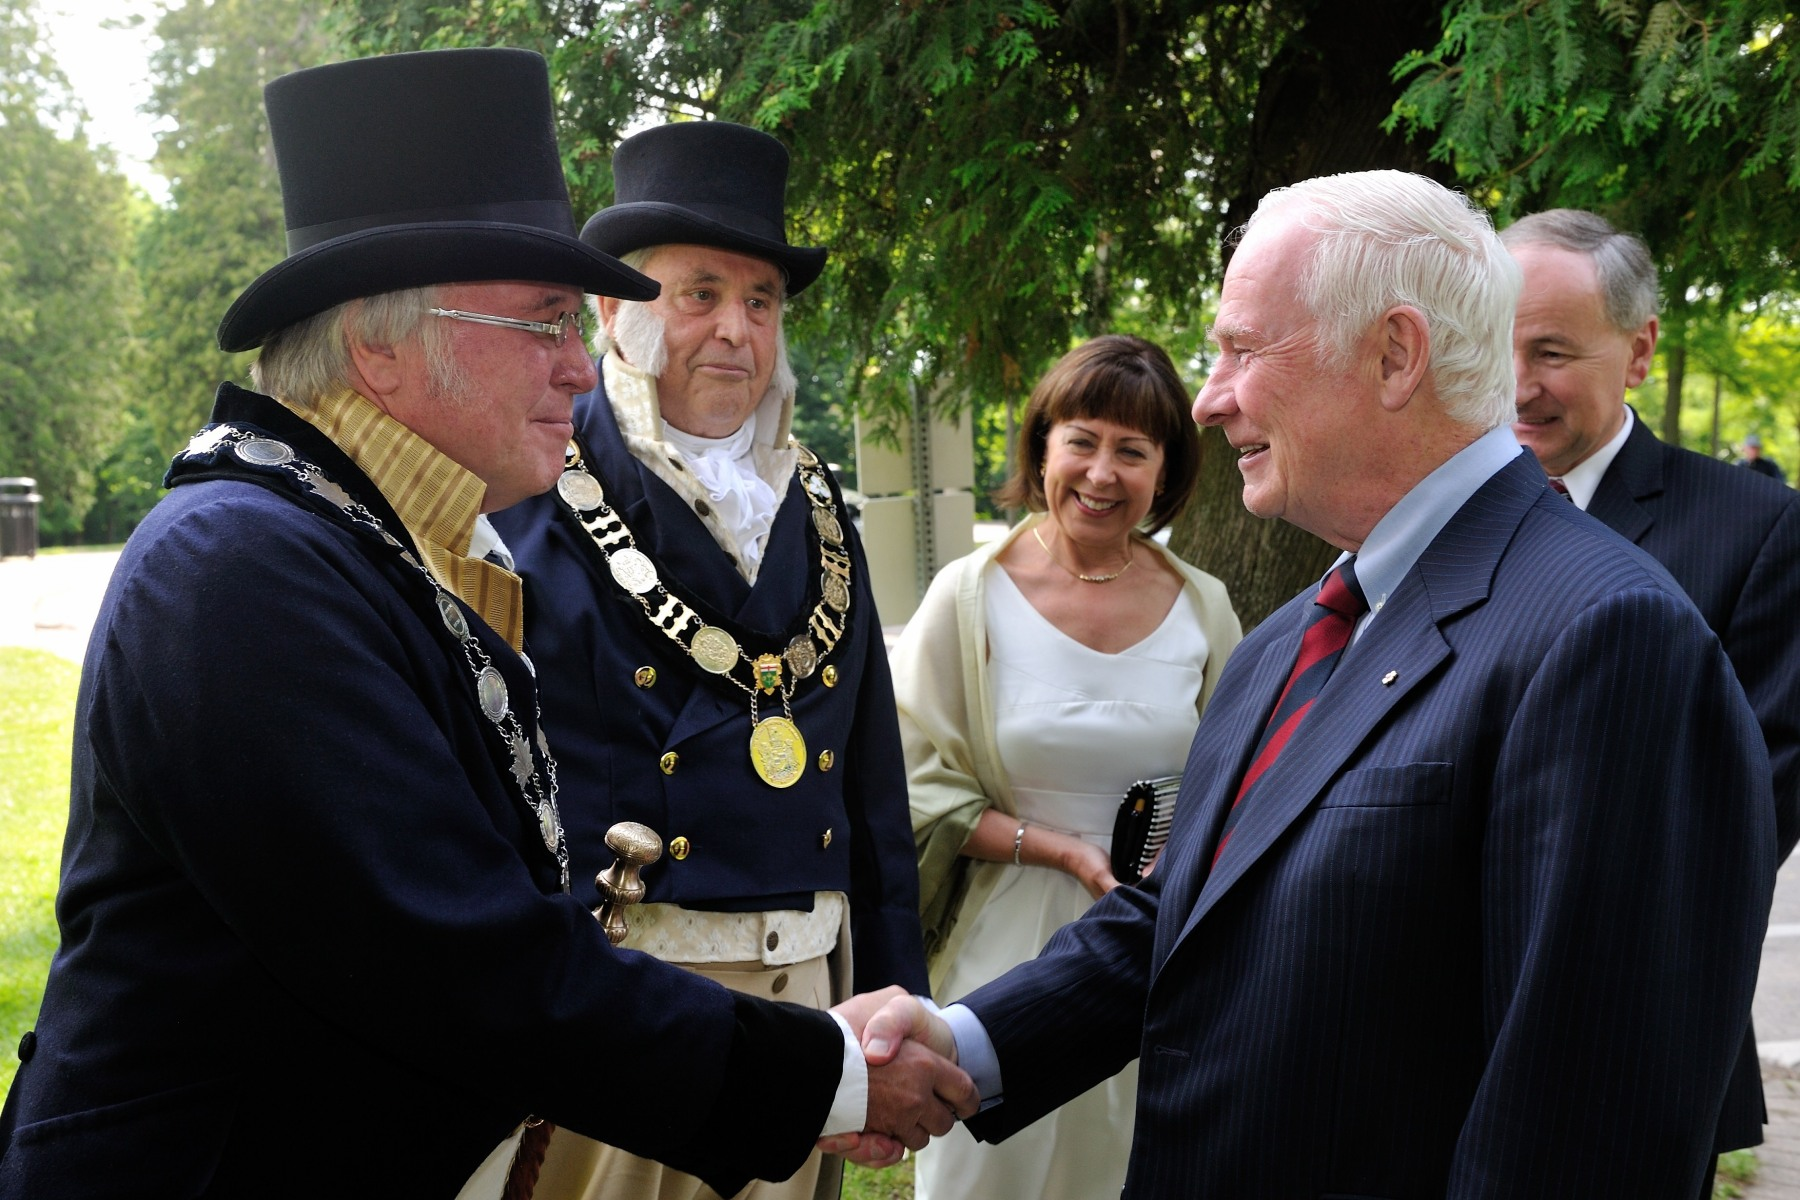 His Excellency the Right Honourable David Johnston, Governor General and Commander-in-Chief of Canada, attended events commemorating the bicentennial of the declaration of the War of 1812, in Niagara-on-the-Lake, Ontario, on Saturday, June 16,2012.Upon his arrival on the historic battlefield of Queenston Heights, the Governor General was welcomed by His Worship Dave Eke, Lord Mayor of Niagara-on-the-Lake.